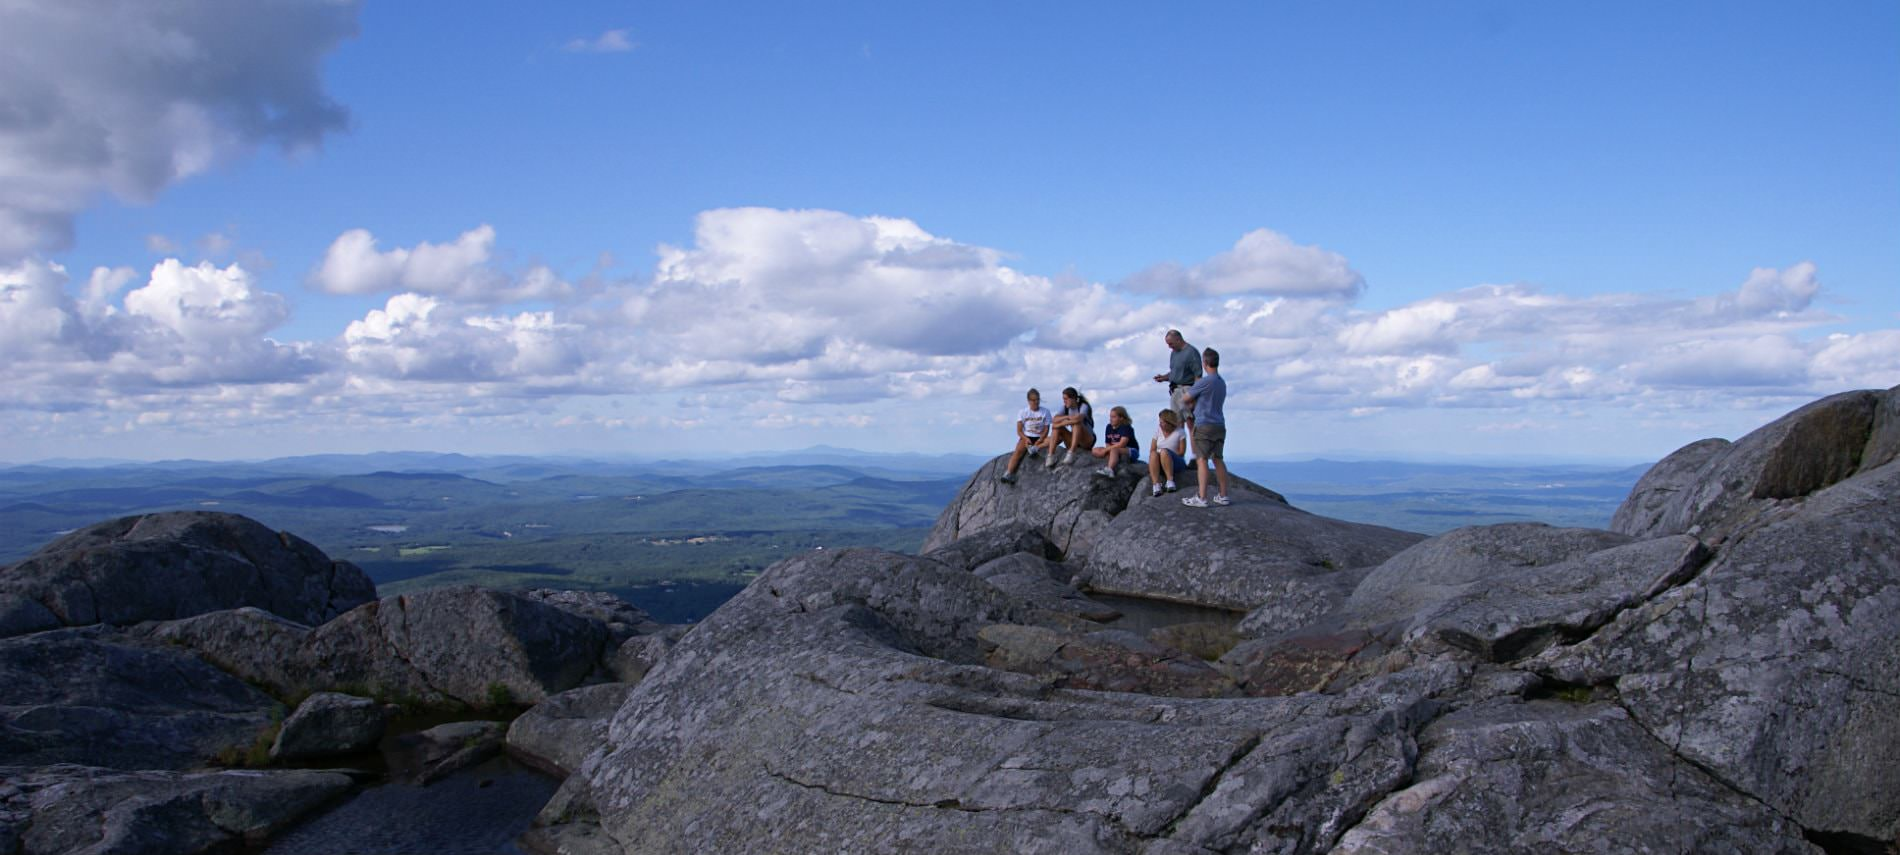 Group of people sitting on a rock ledge overlooking miles of tree covered hills